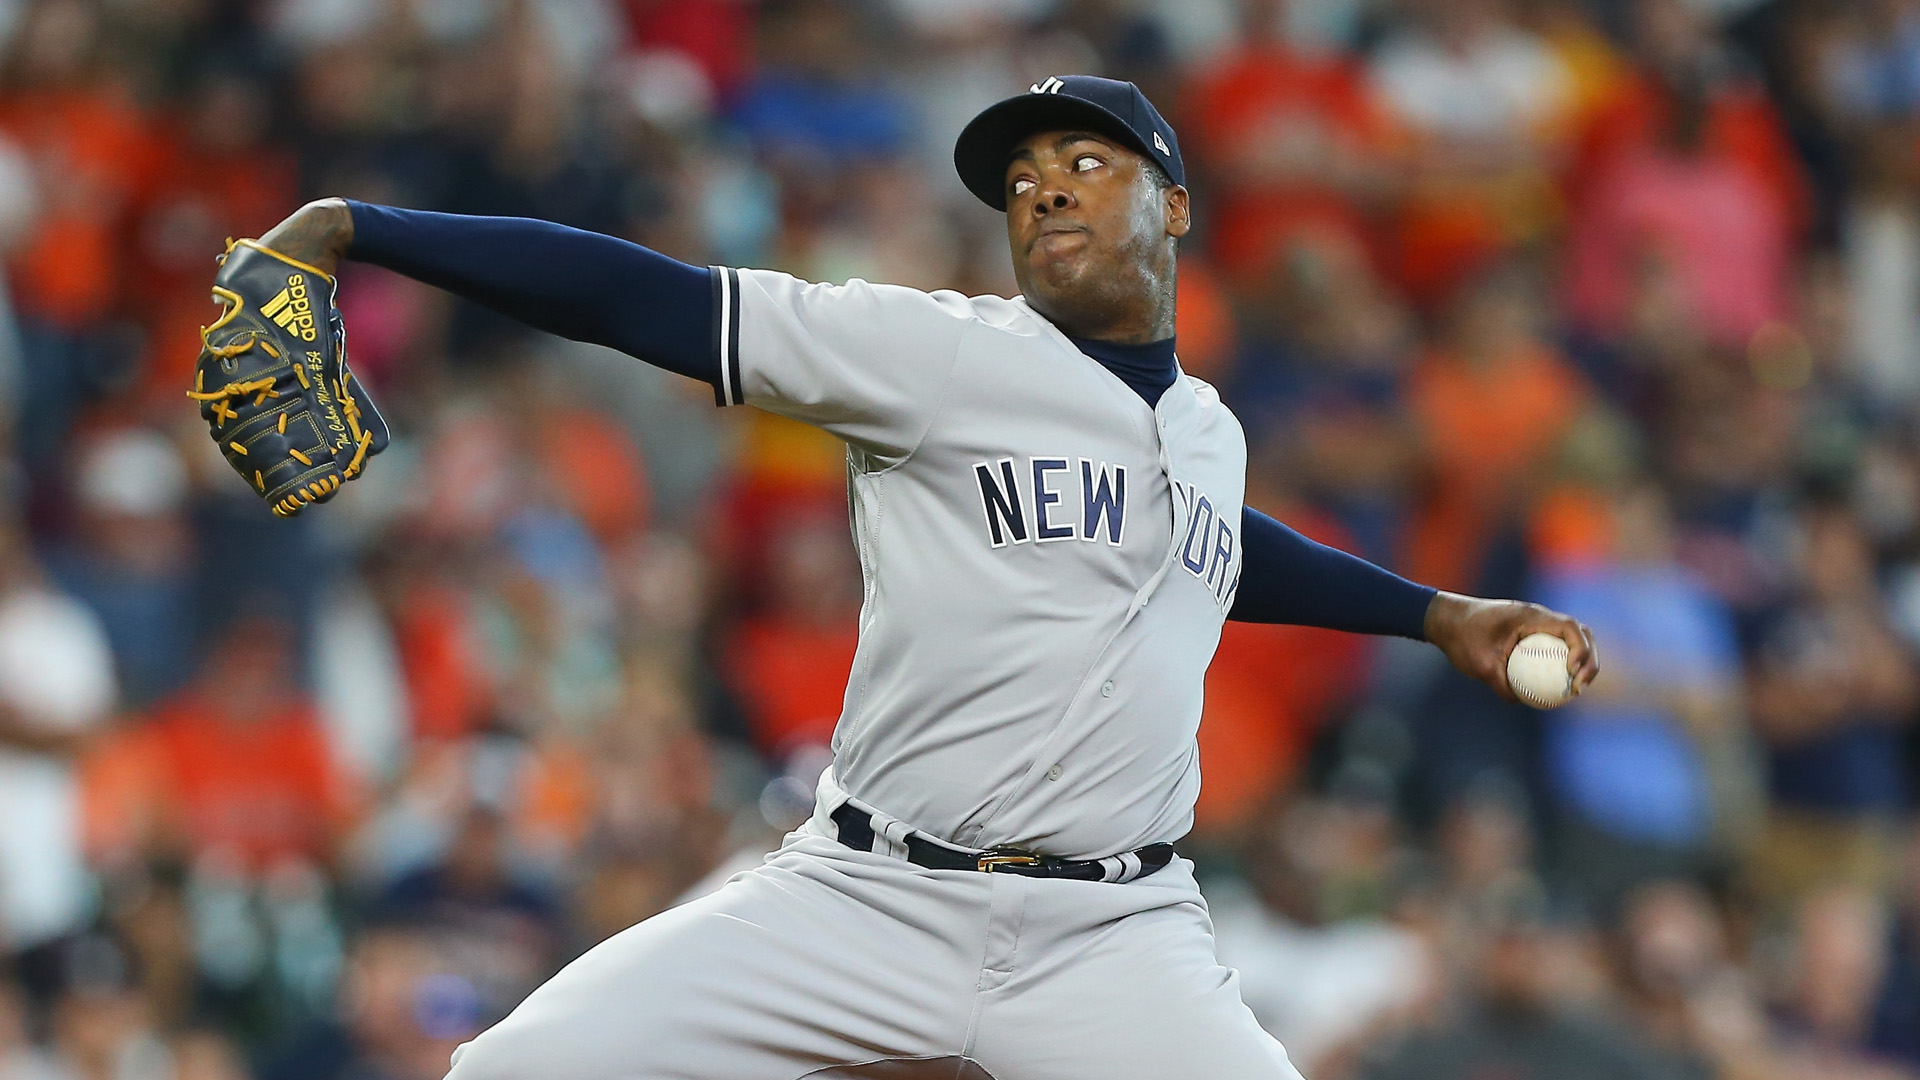 Yanks' Chapman exits after 6 pitches due to knee